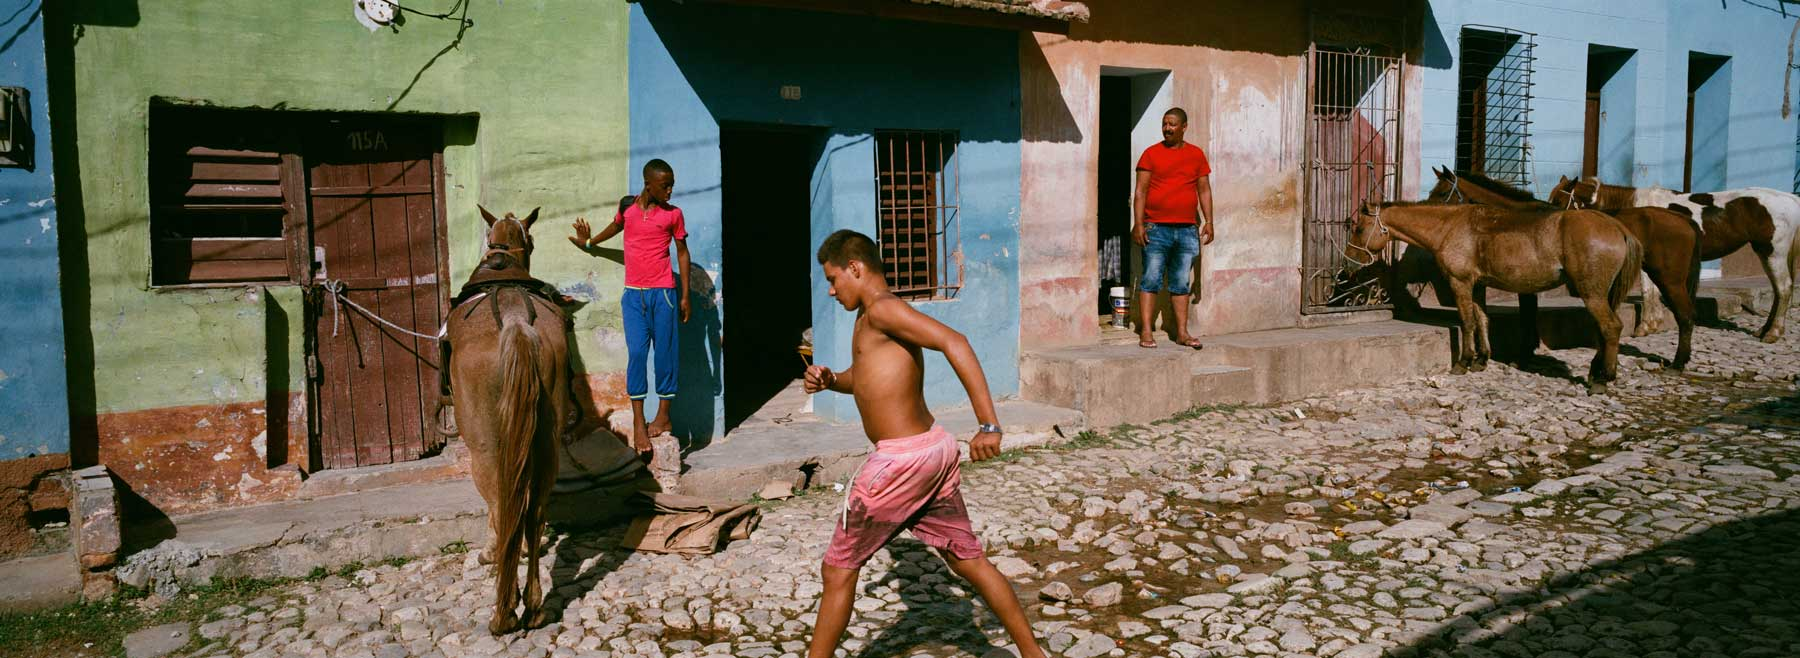 hasselblad-xpan-ii-review-hassel-rangefinder-camera-film-camera-review-photography-pano-panorama-panoramic-45mm-f4-trinidad-horse-hut-daily-life-local-people